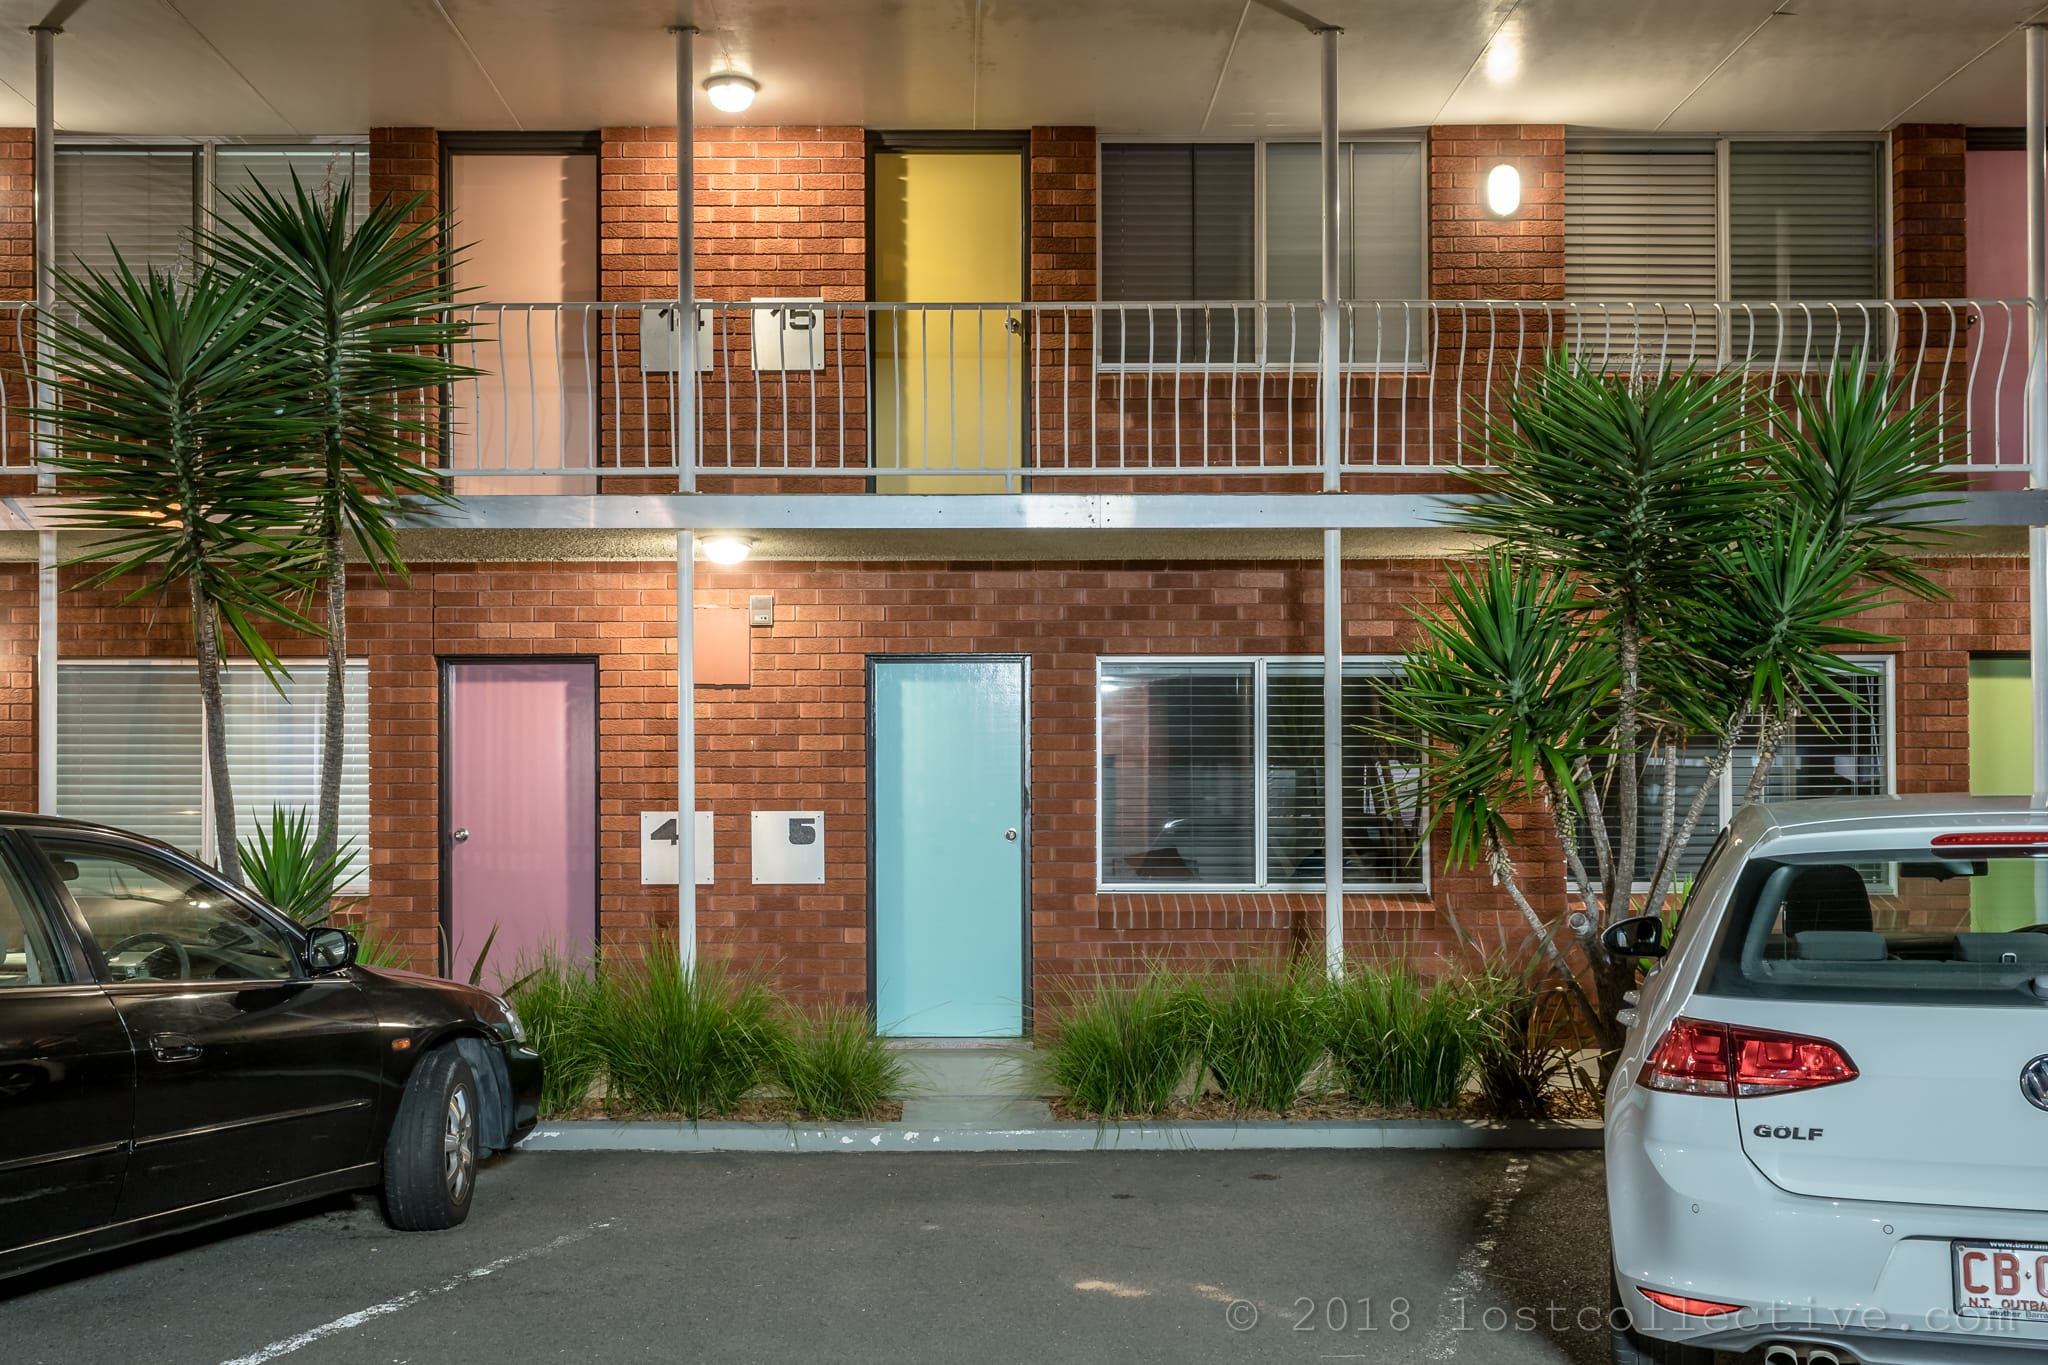 a red brick motel with pastel coloured doors and a tree - lost collective